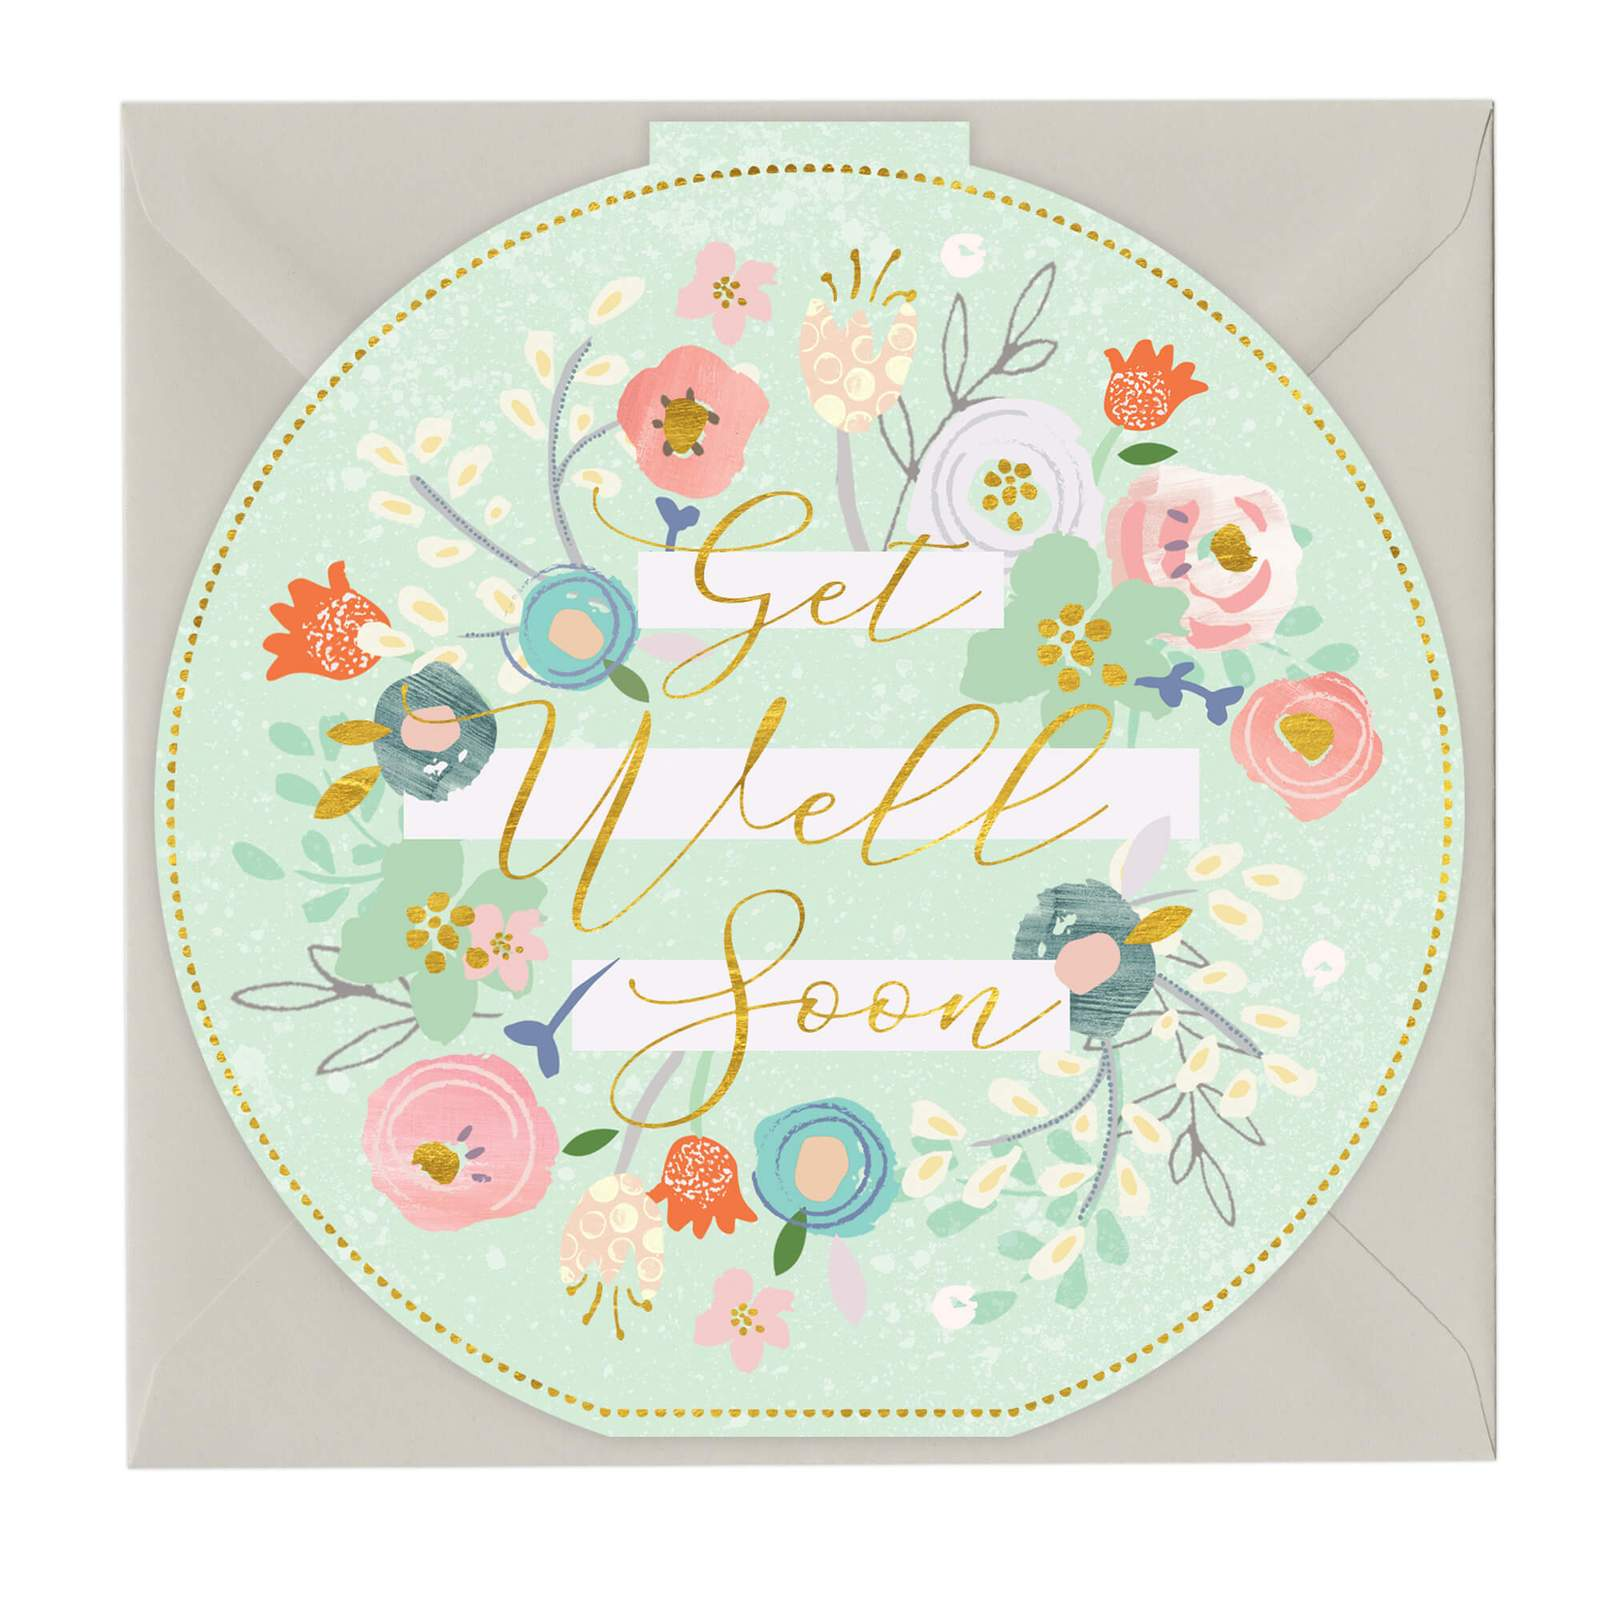 Whistlefish Greeting card - Get Well Soon